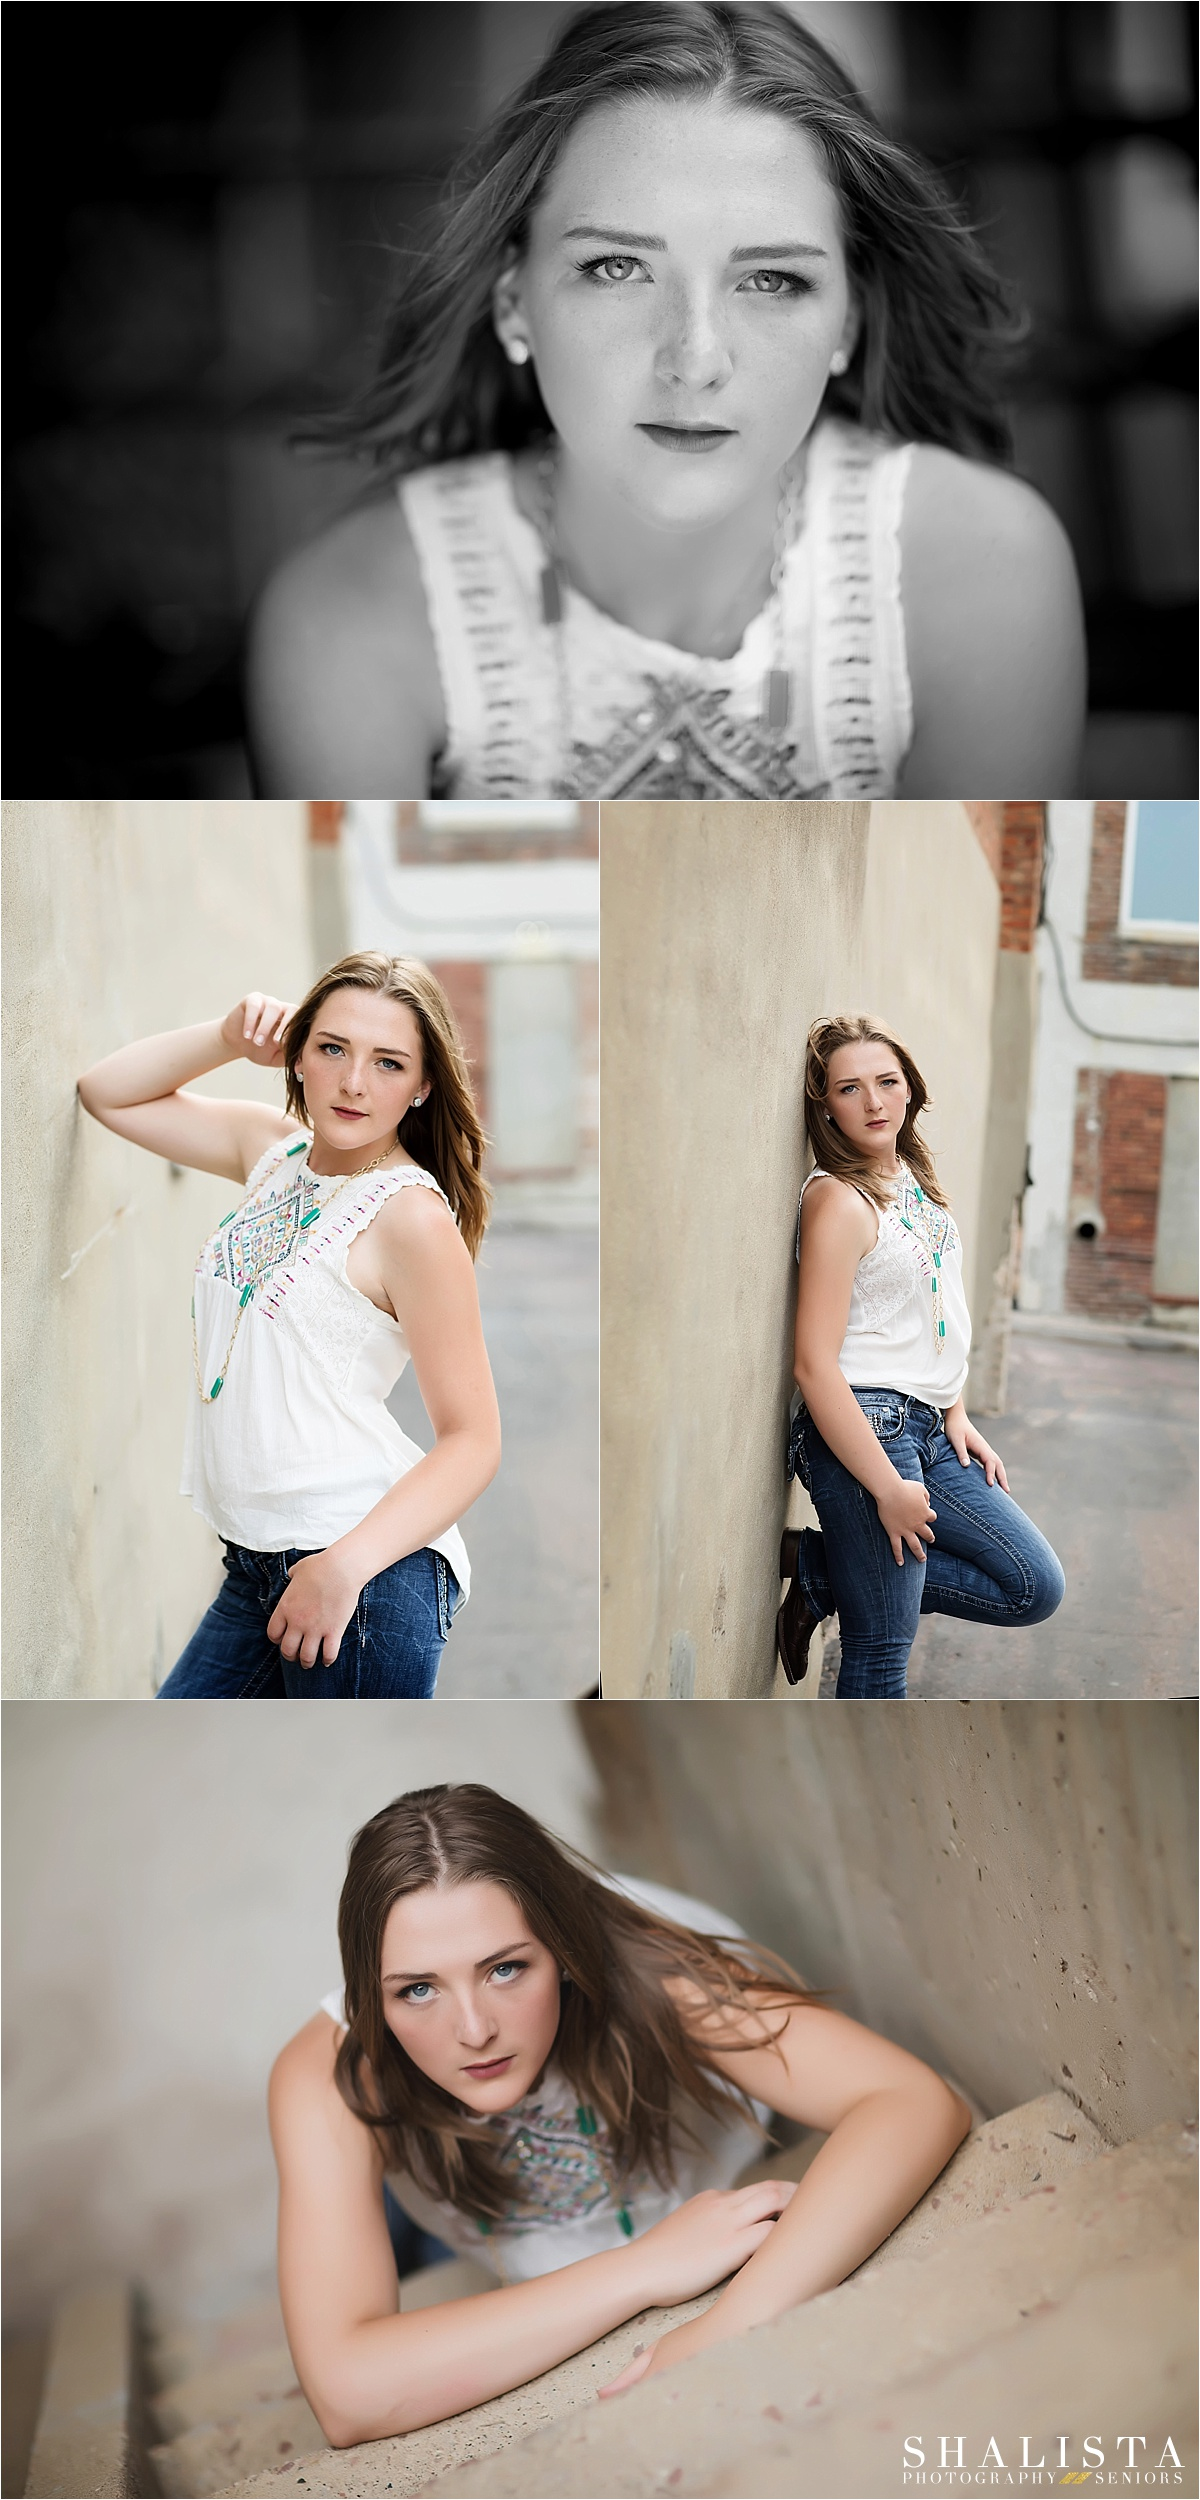 Sioux Falls Senior Photos | Shalista Photography